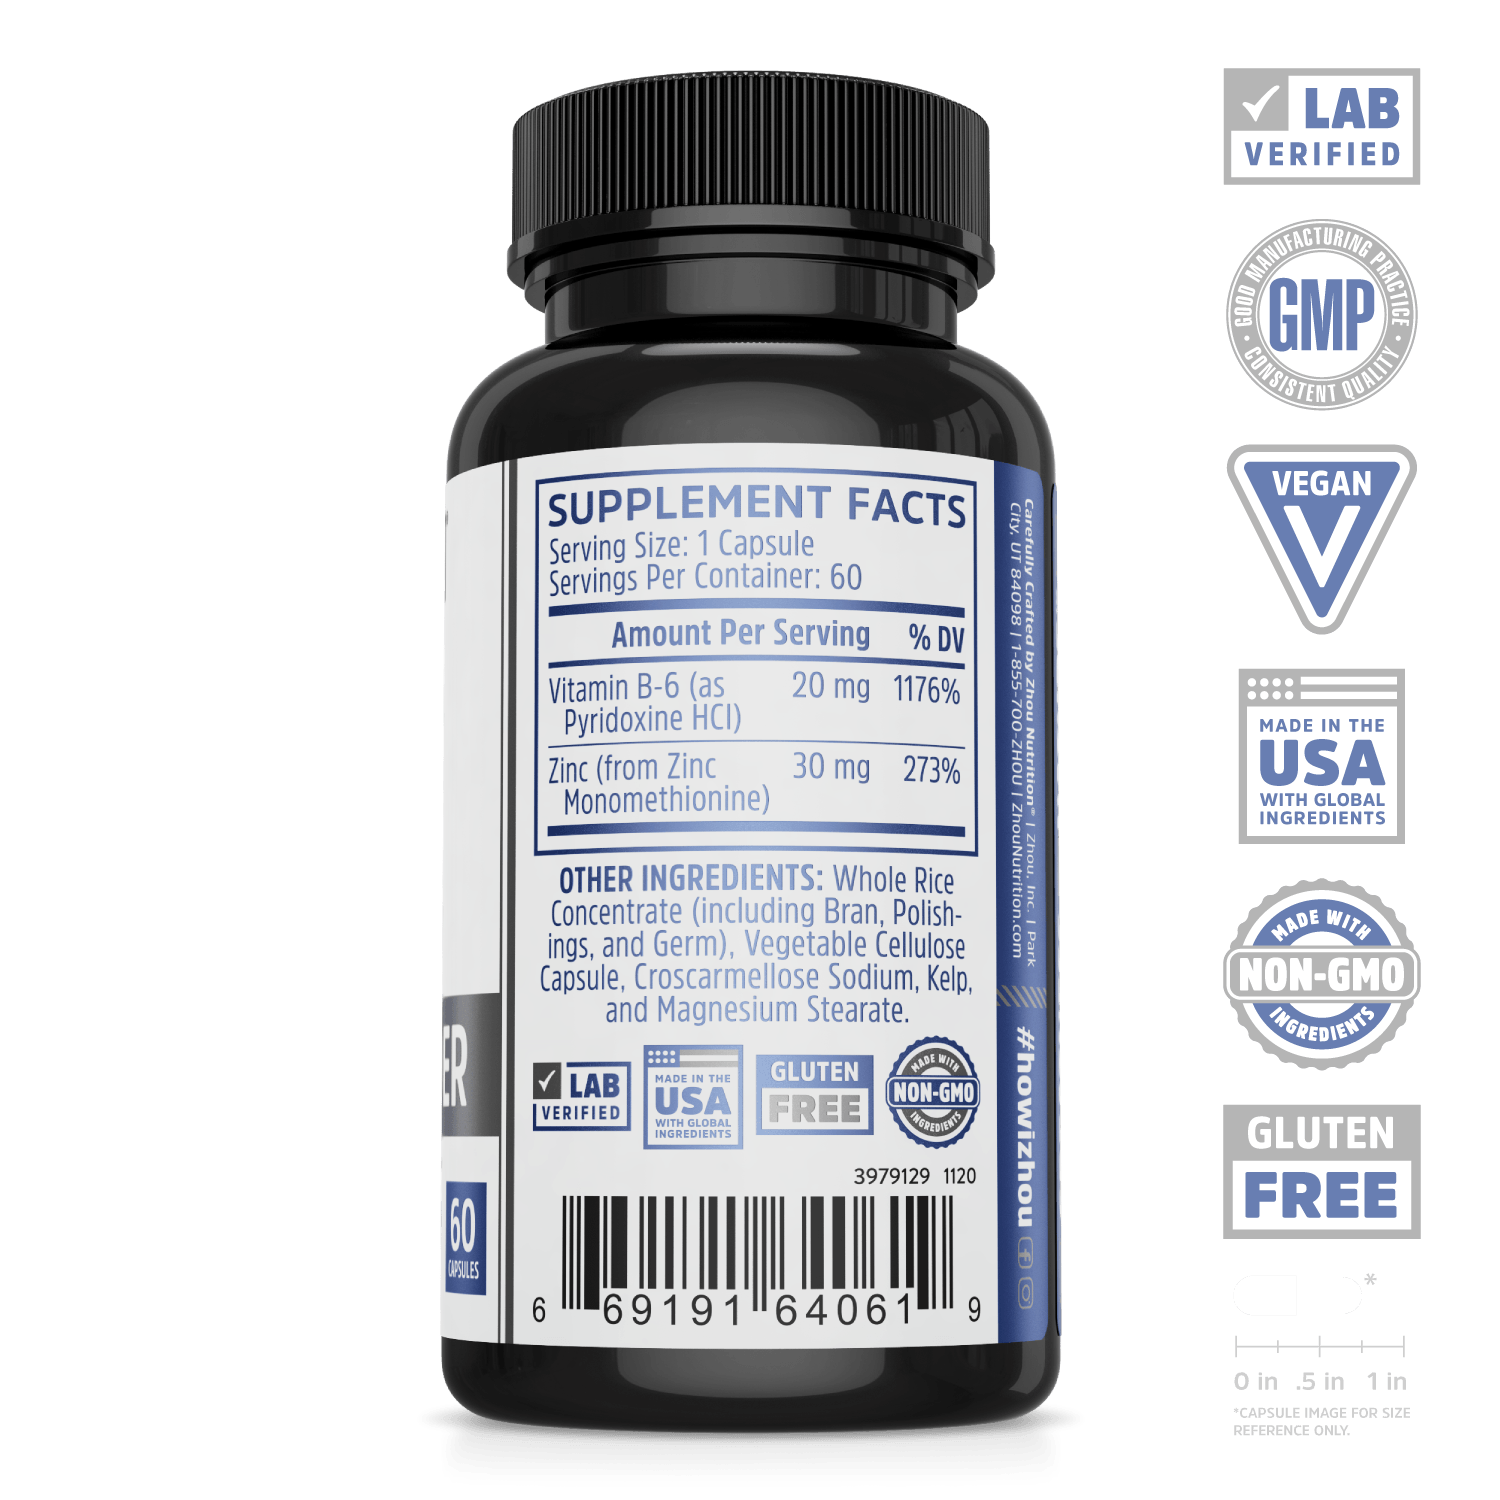 Zinc Defender supplement from zhou nutrition. Lab verified, GMP, vegan, made in the USA with global ingredients, made with non-GMO ingredients, gluten free.